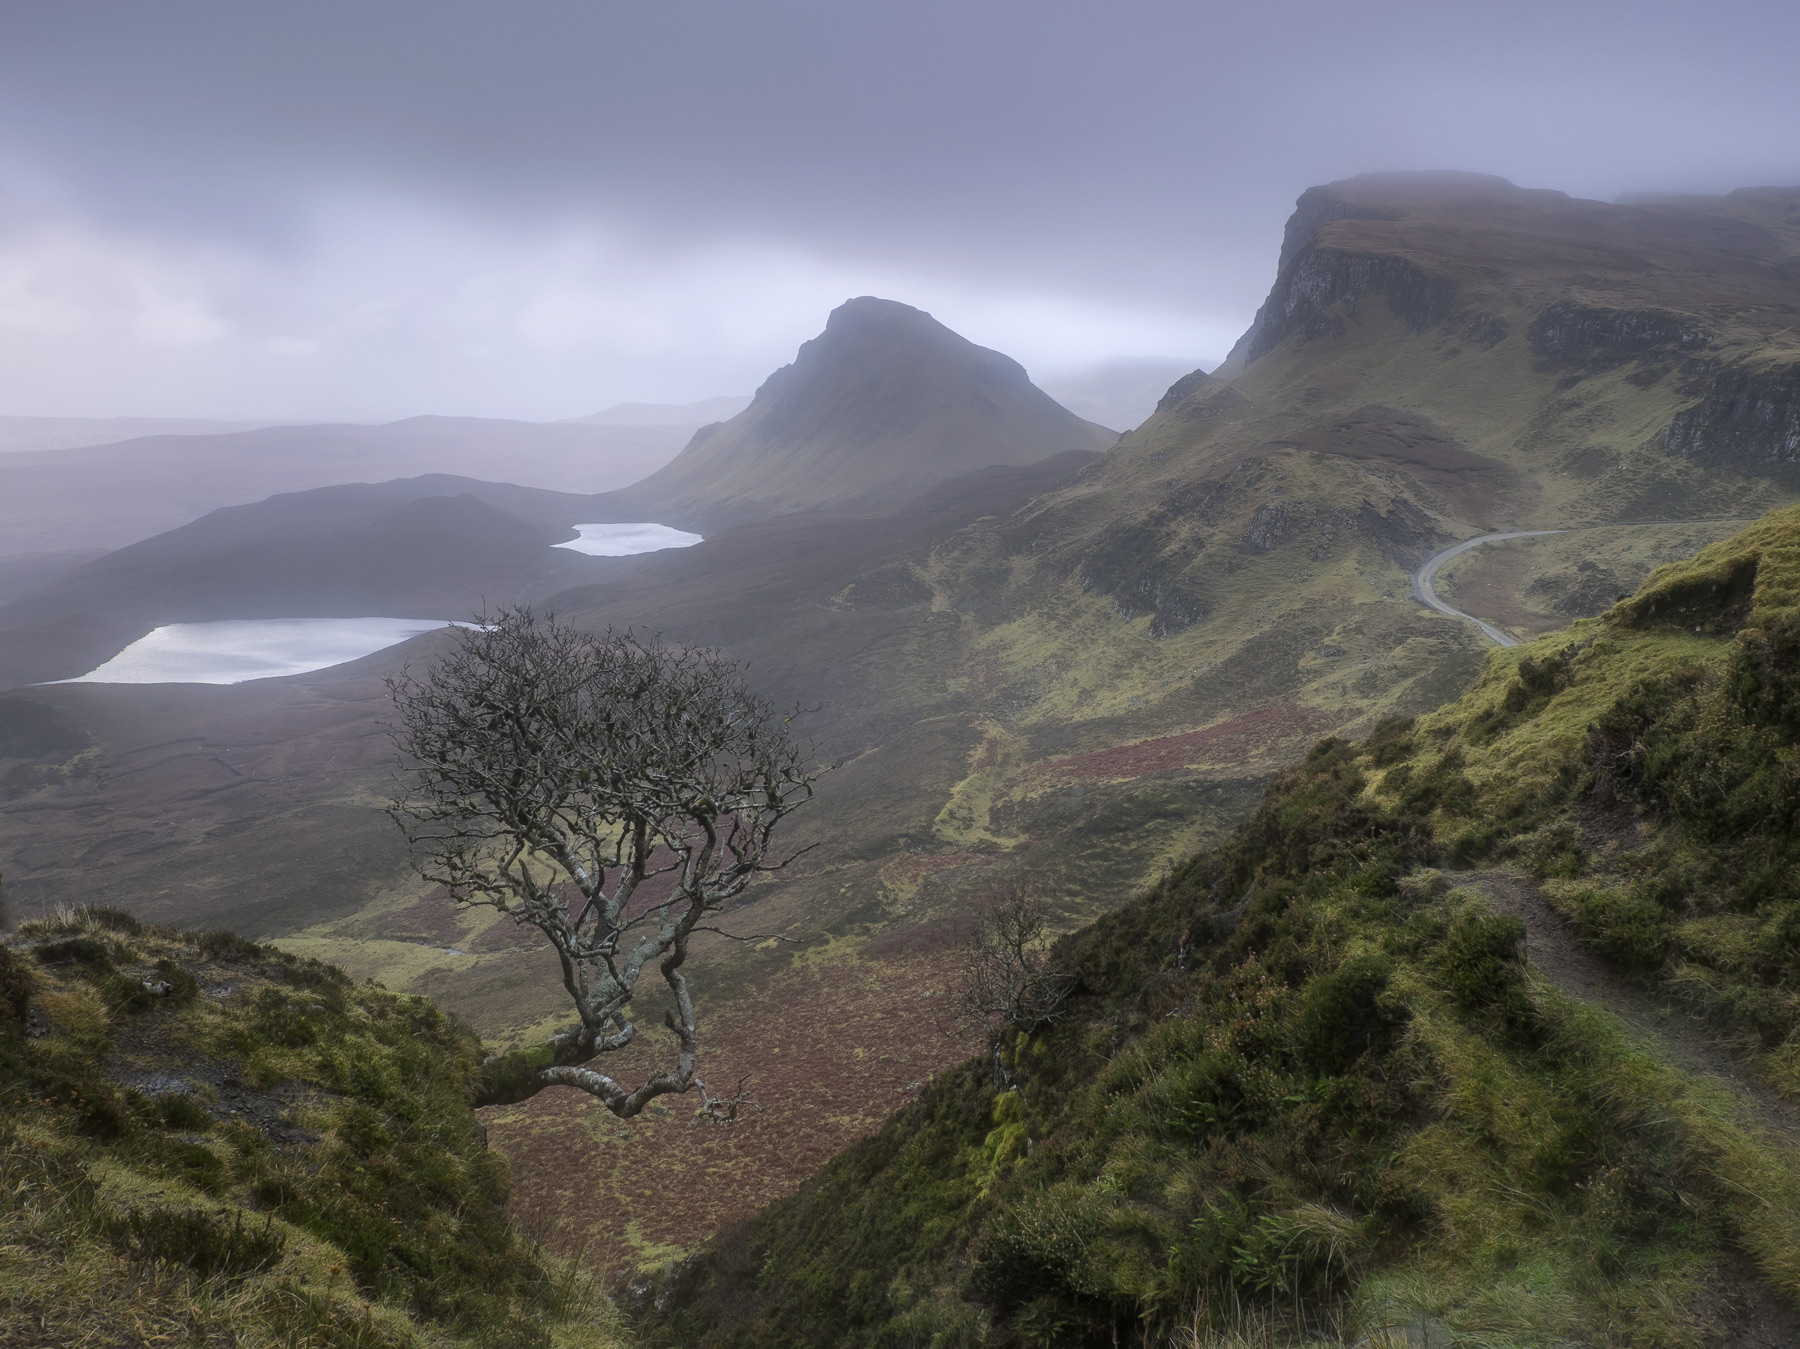 Gloomy Quiraing, Quiraing, Skye, Scotland, mood, feel, damp, eerie, cold, dejected, majestic, silence, atmosphere, shive, photo